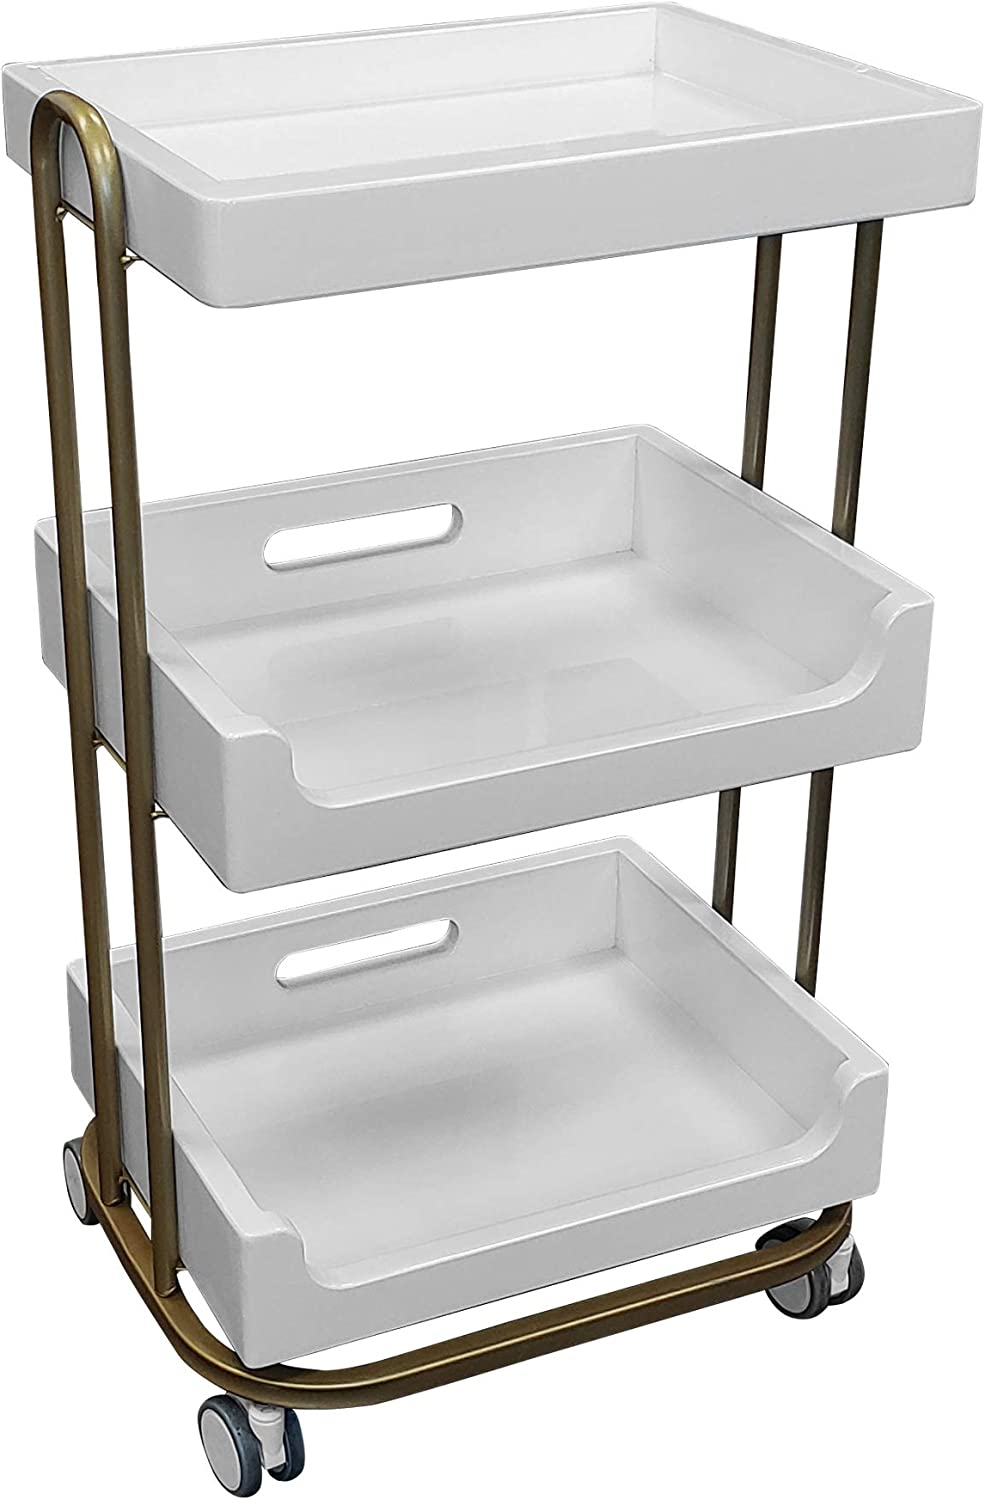 TOA Supply 3 Shelf Wooden Tray Cart White Storage Trolley Rolling Beauty Salon Hair Spa: Home & Kitchen